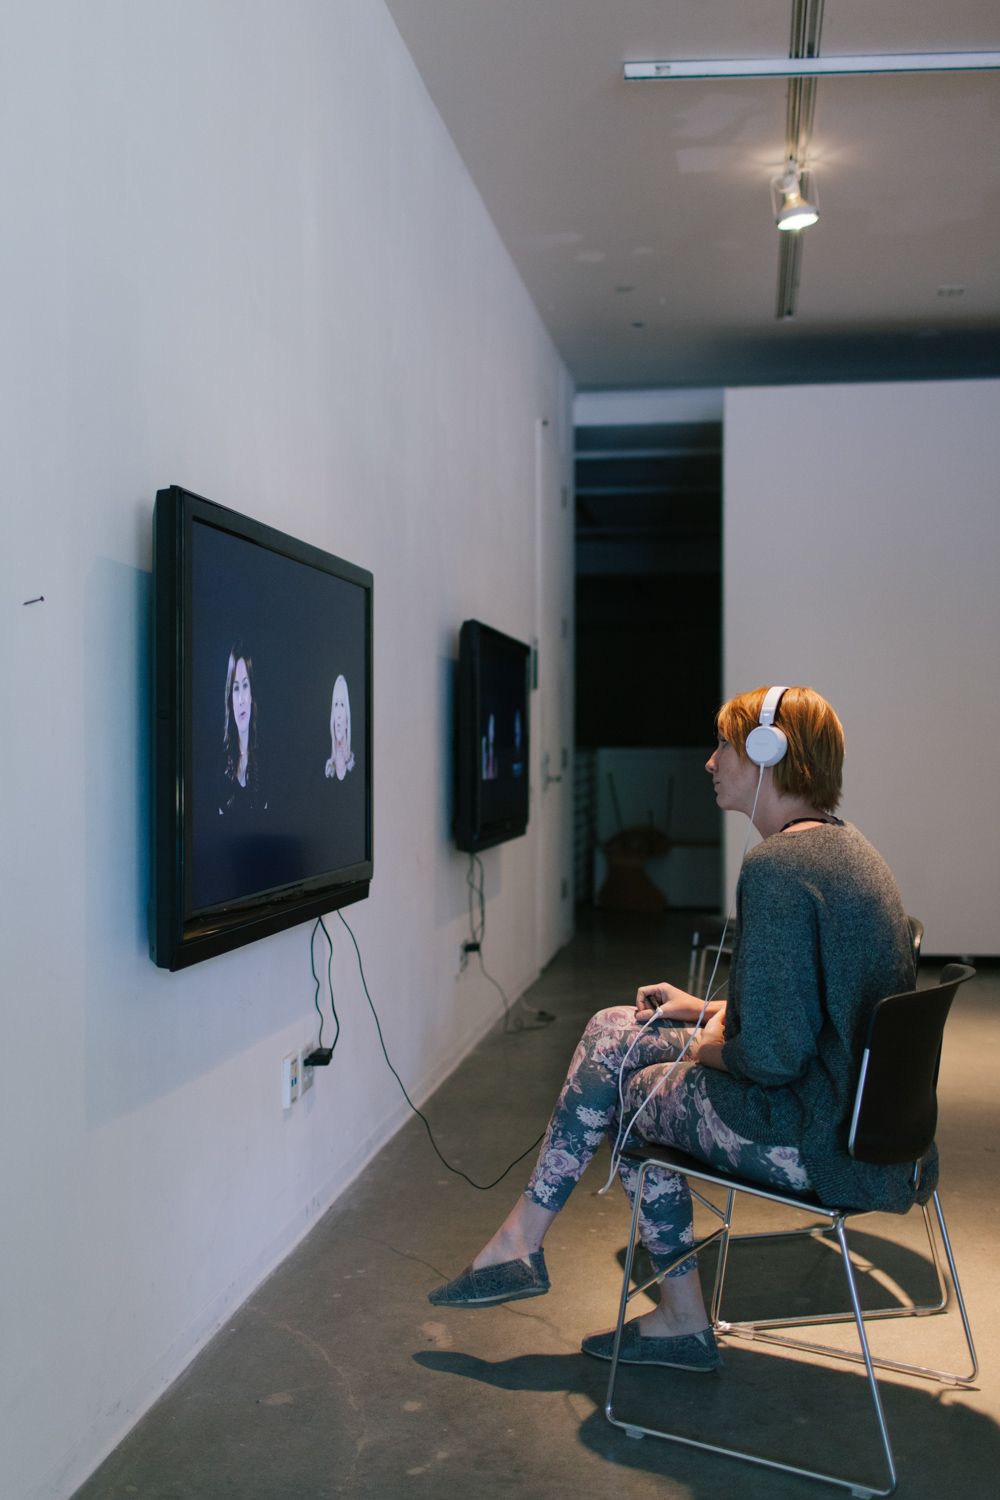 Person with headphones sitting in front of Iglesias' solo show work.